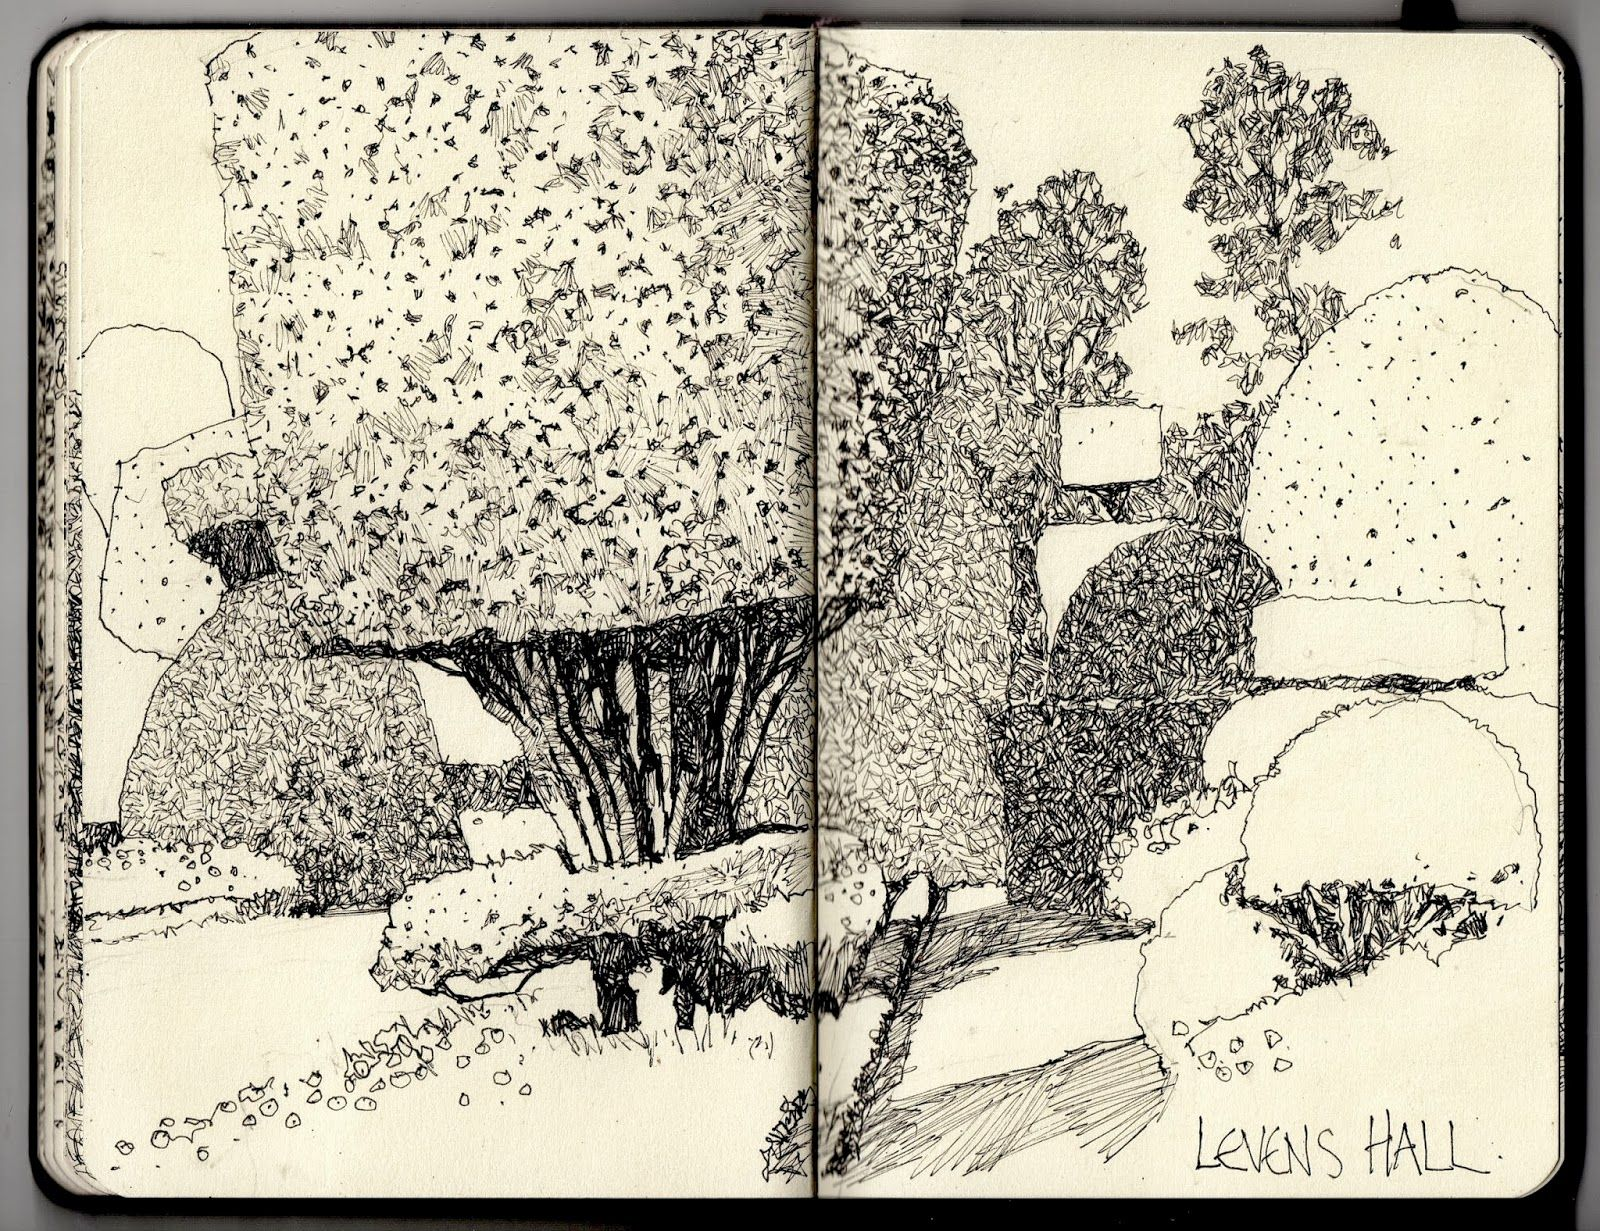 Fine Line Art : Ian sidaway fine line: levens hall topiary lines and scetches